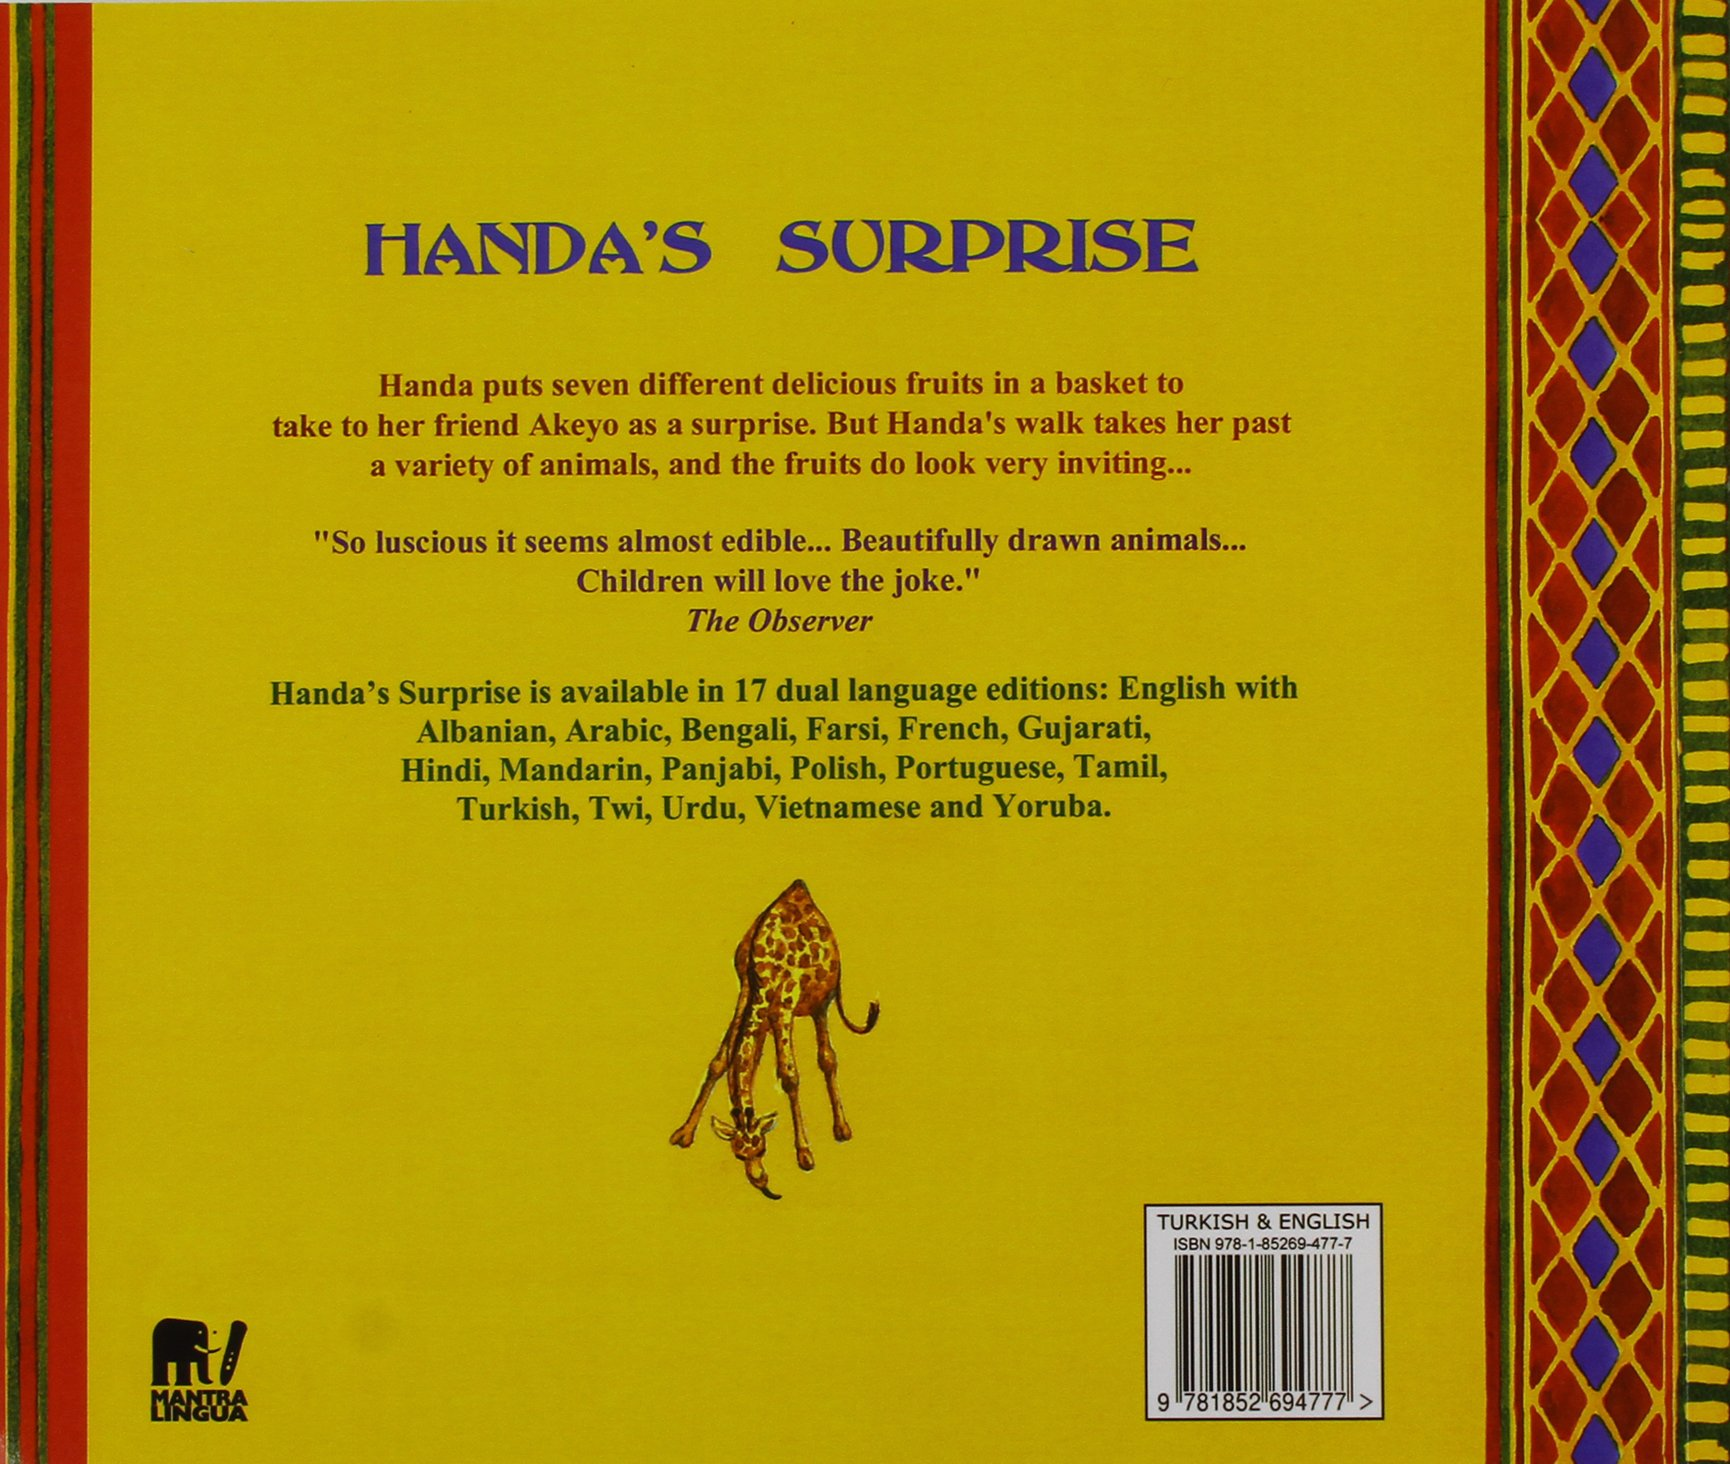 Buy Handa's Surprise in Turkish and English Book Online at